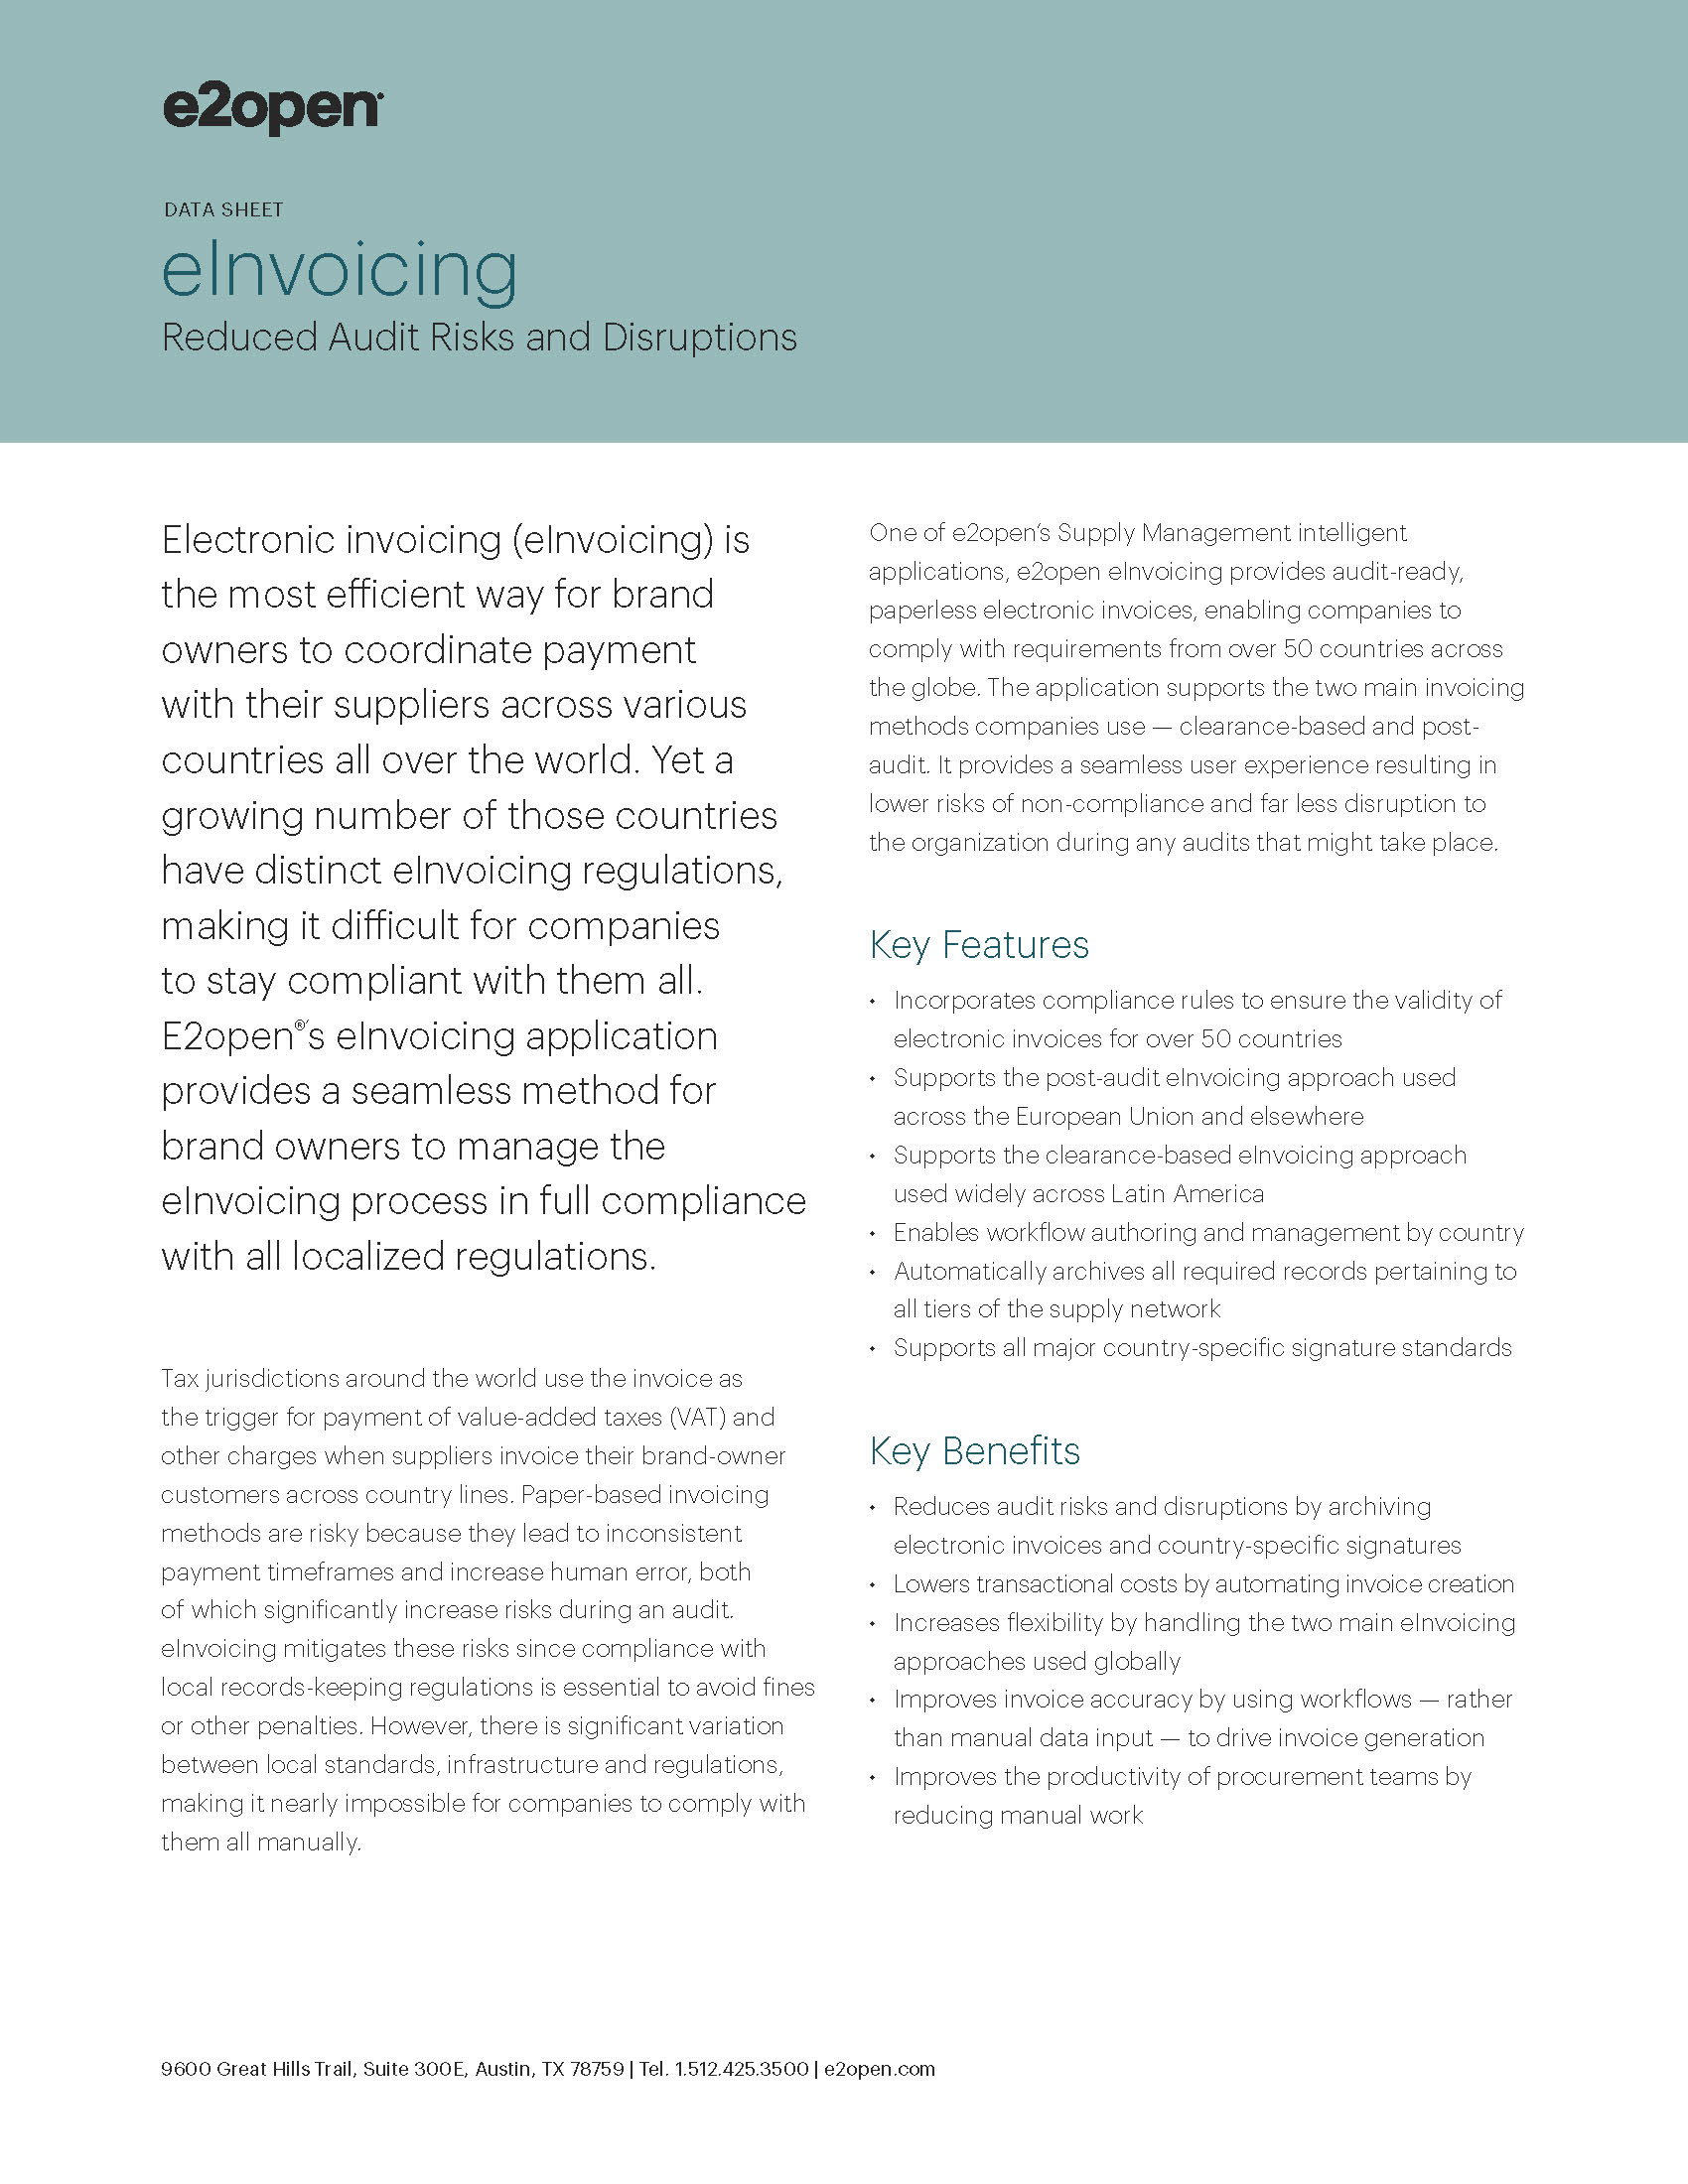 E2open eInvoicing Data Sheet